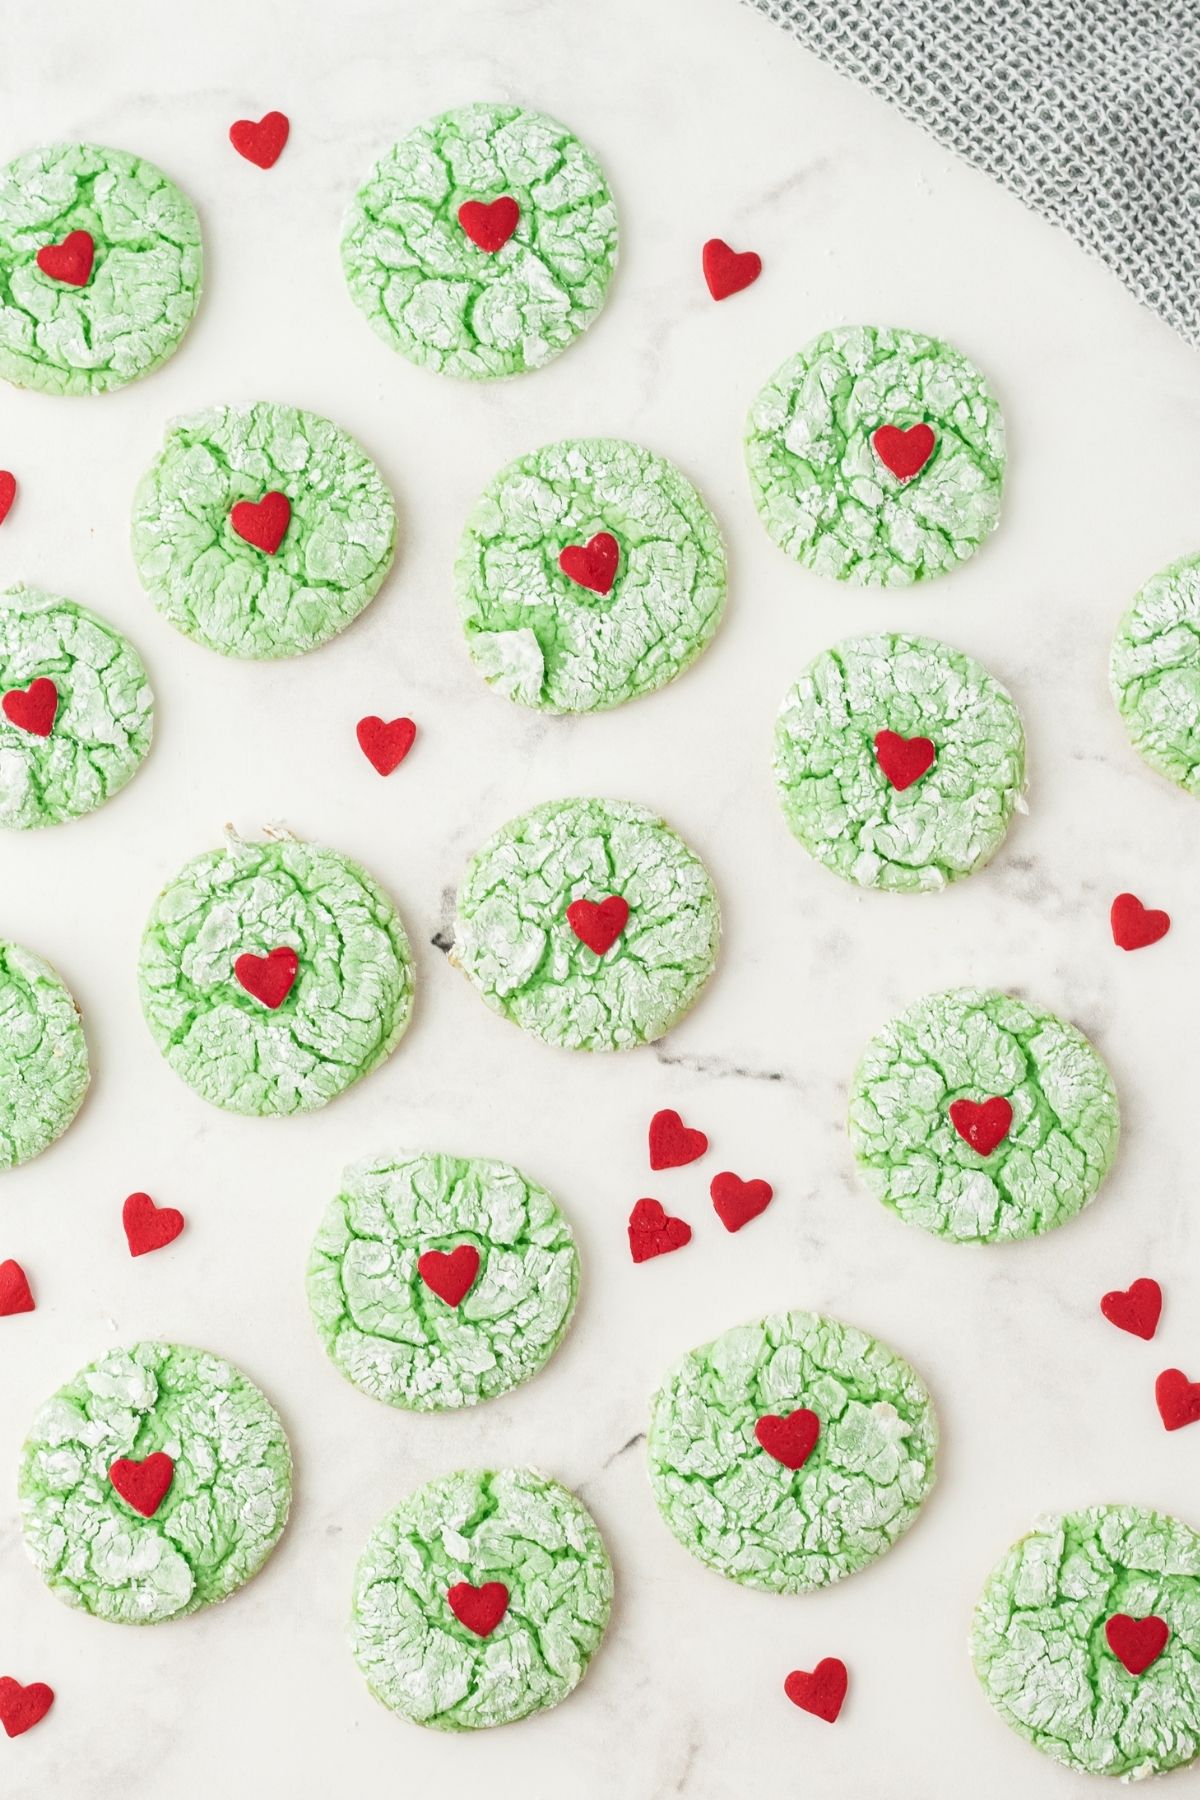 baked green cookies with cracks and a big red heart on white counter